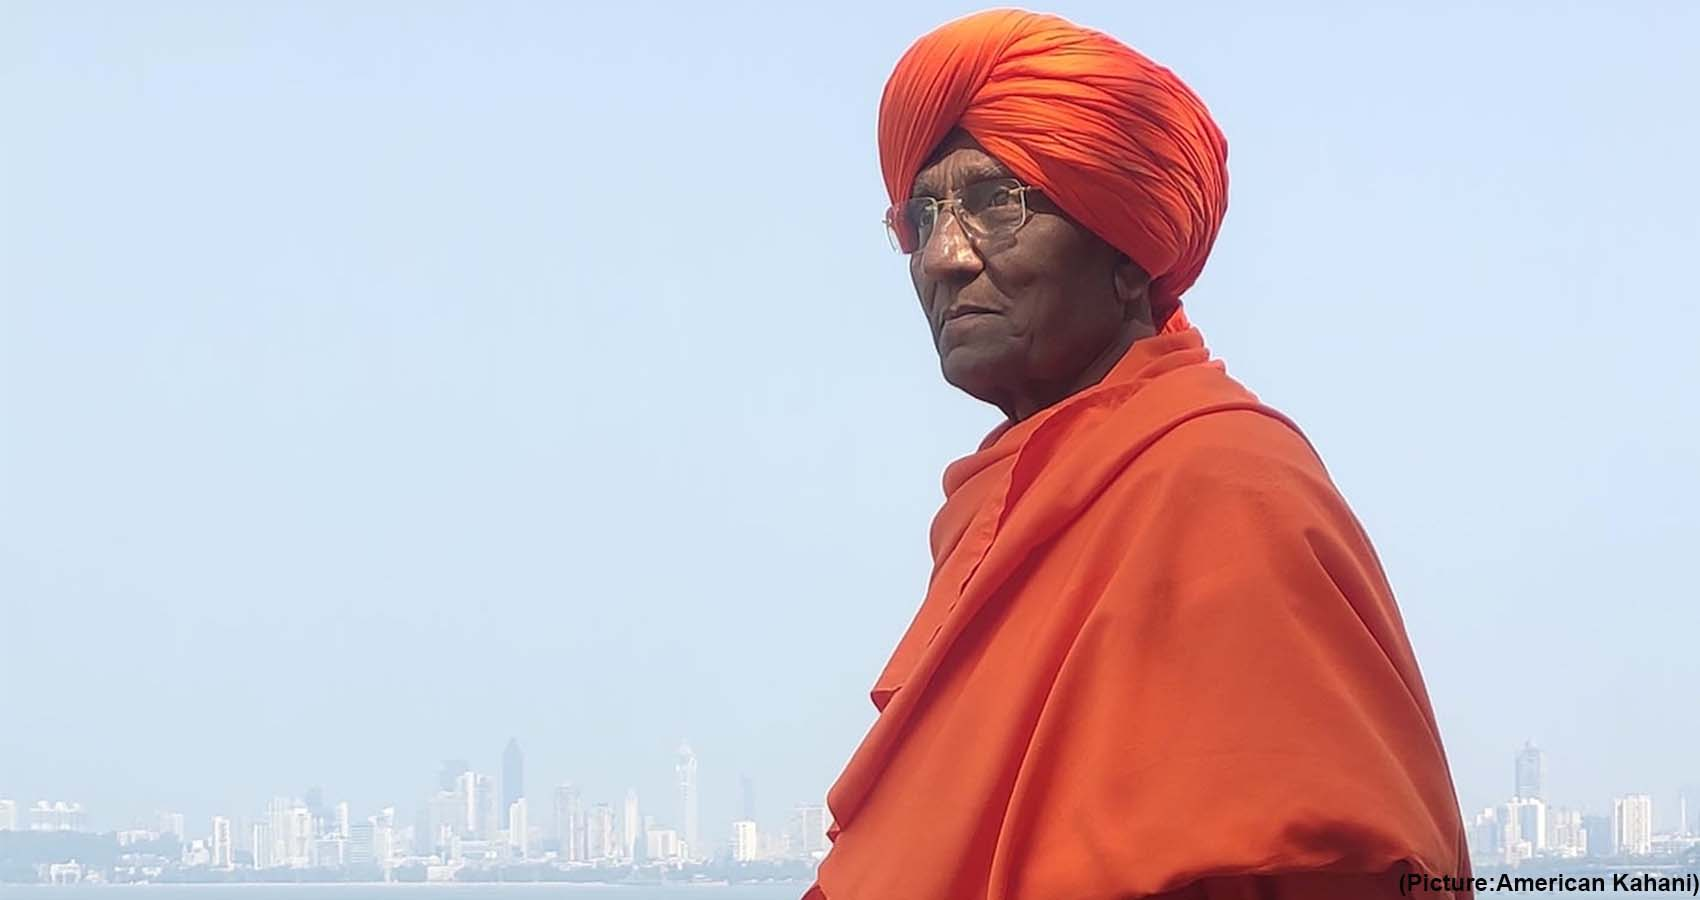 Remembering Swami Agnivesh, Who Stood Up For Justice, Religious Freedom